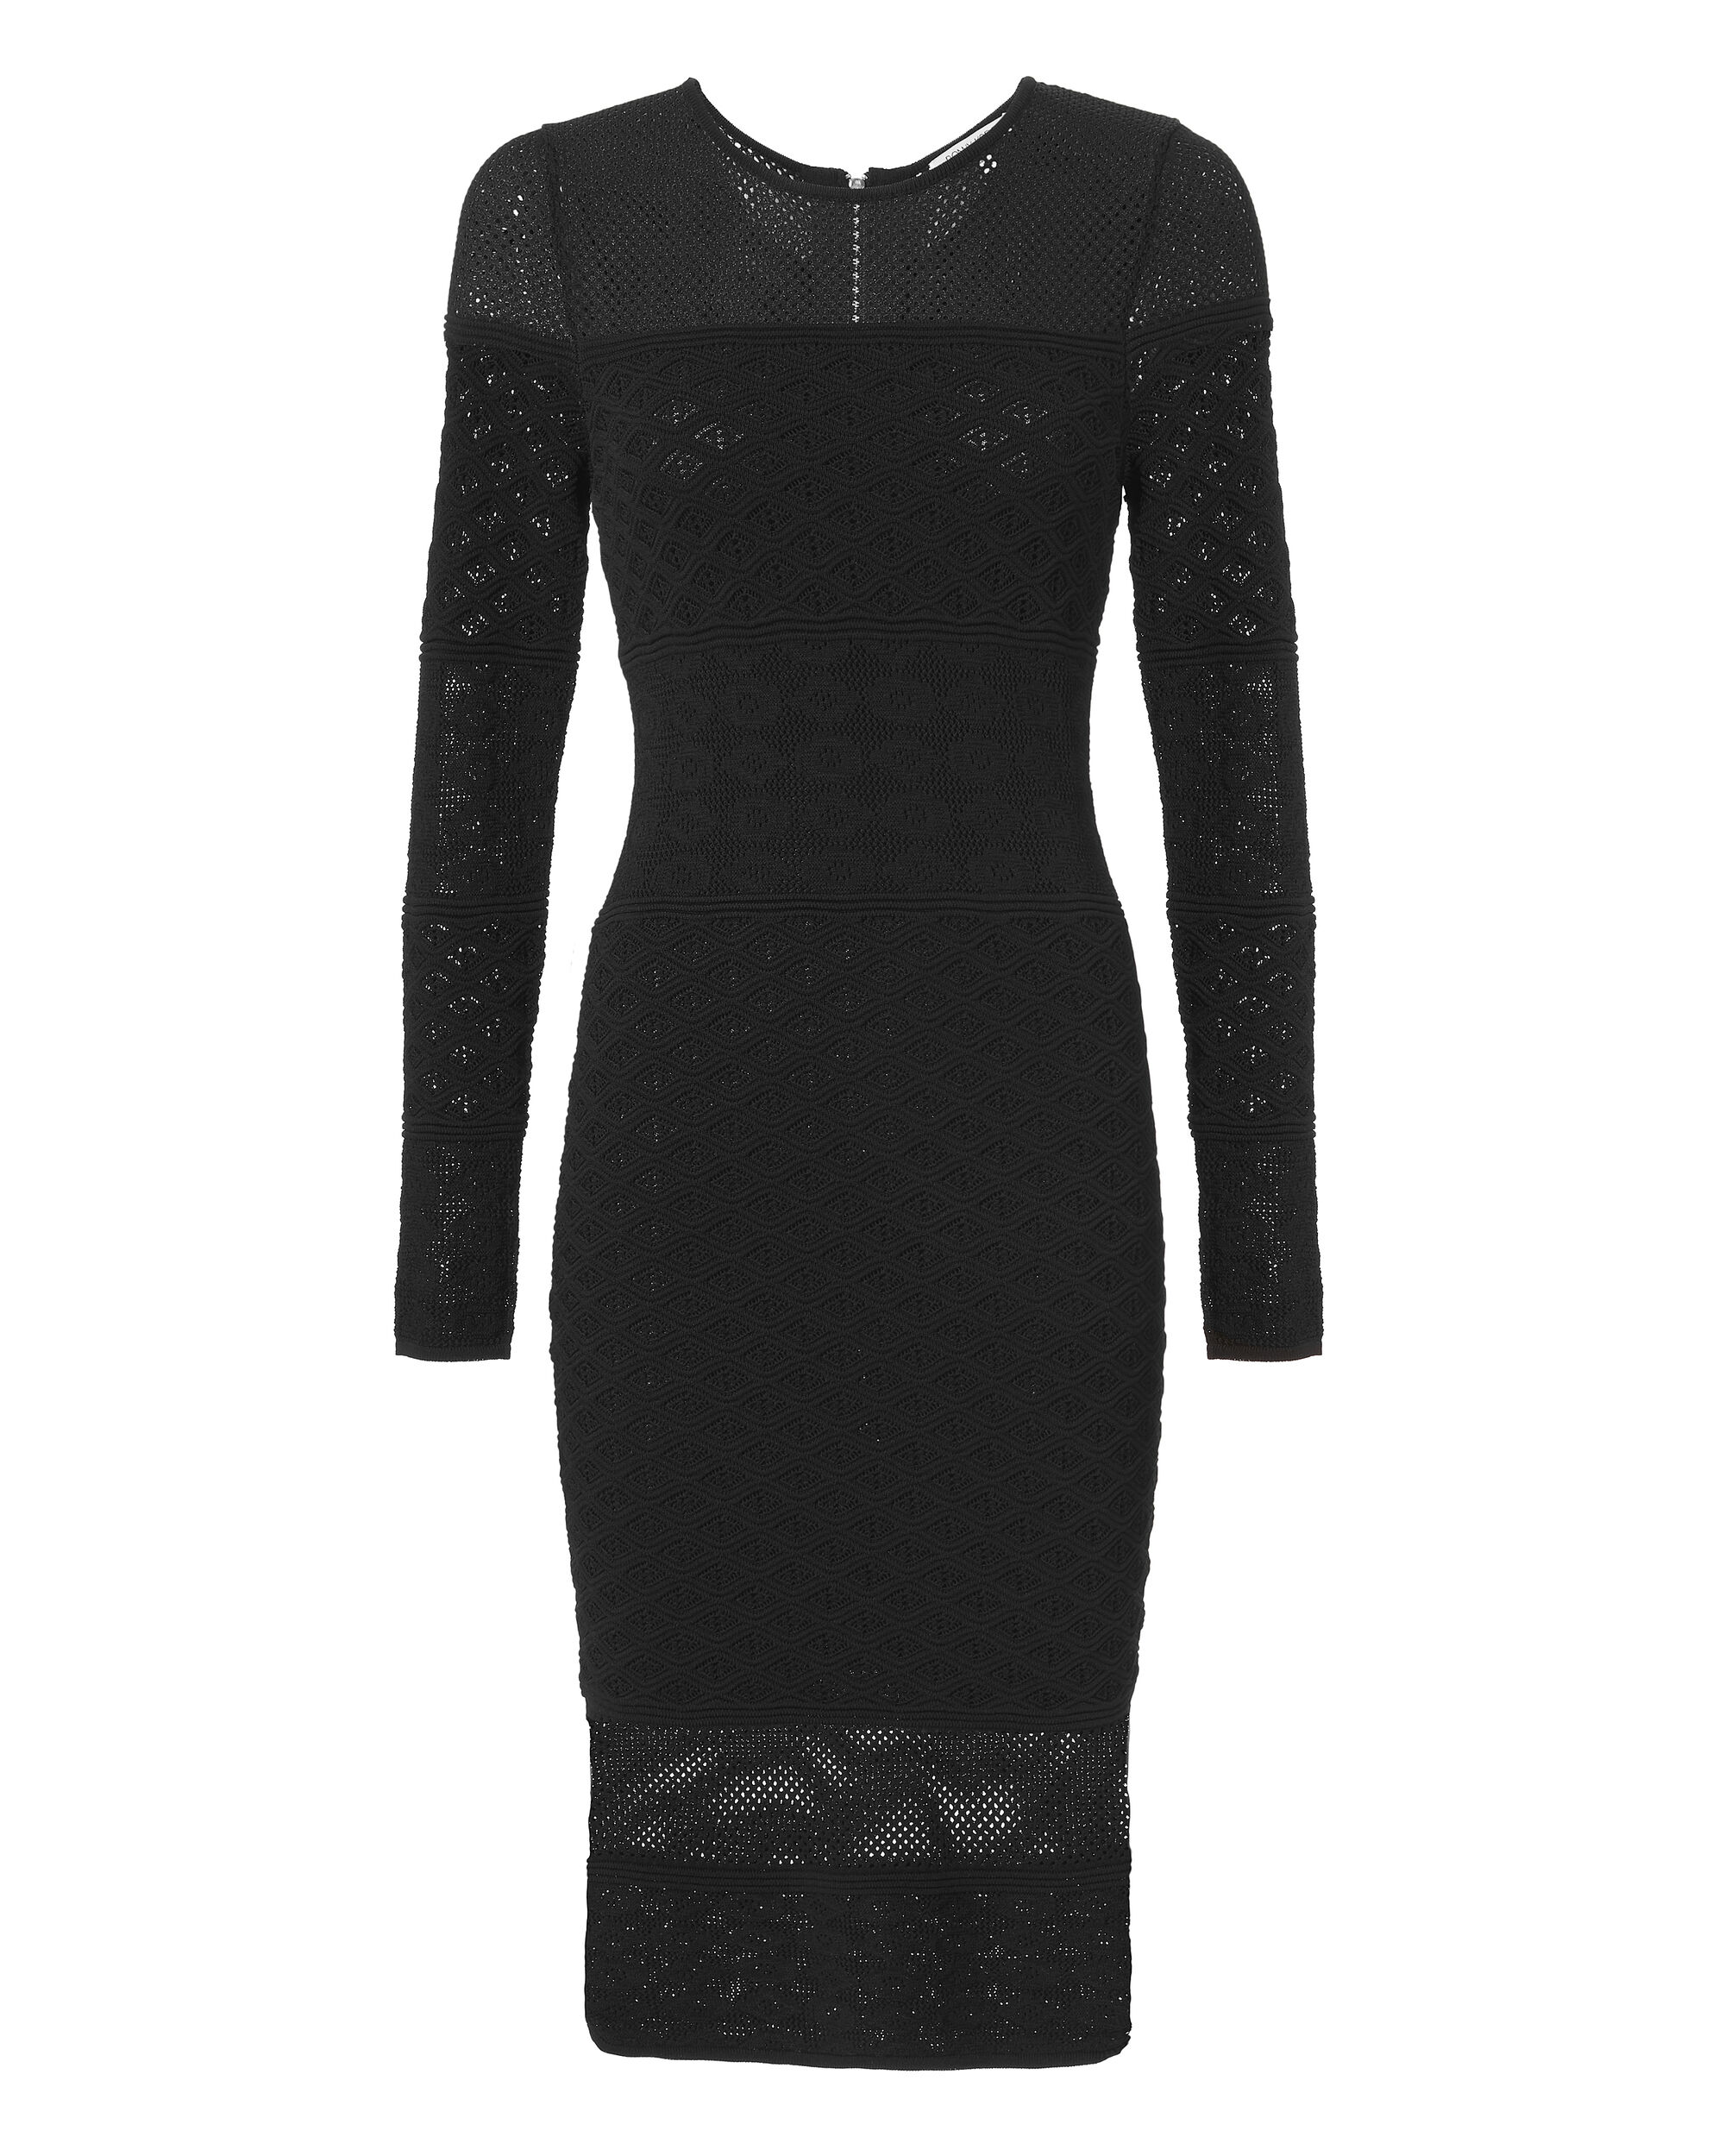 Heatherlynn Dress, BLACK, hi-res